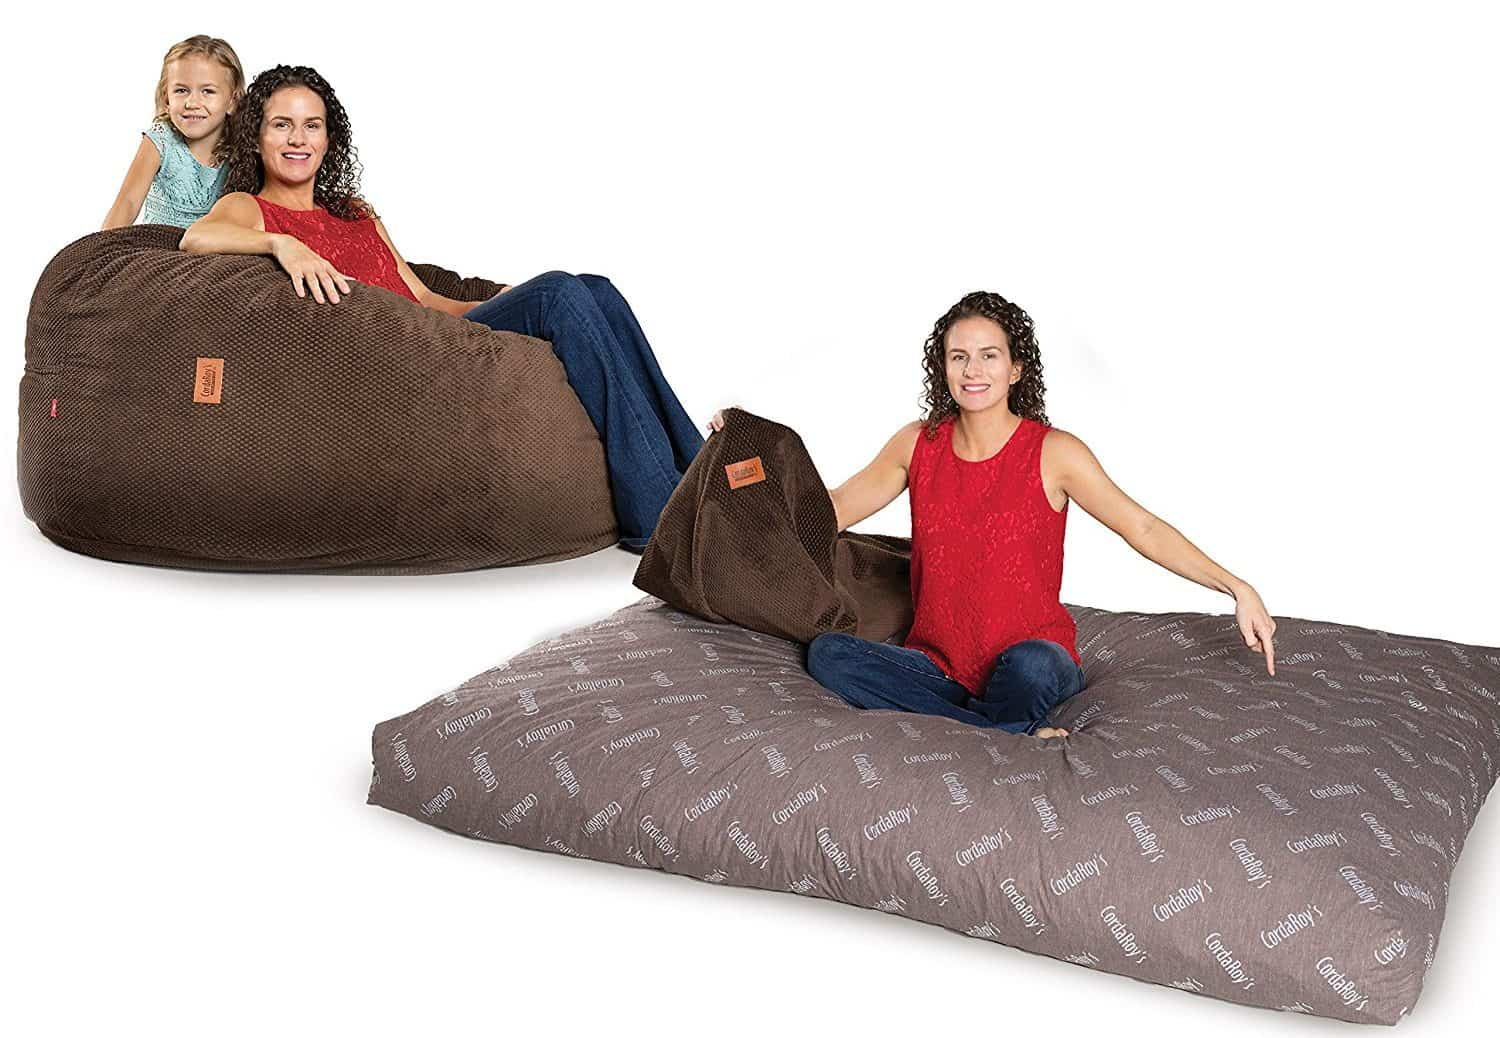 Convertible Bean Bag Chair To Mattress Bed